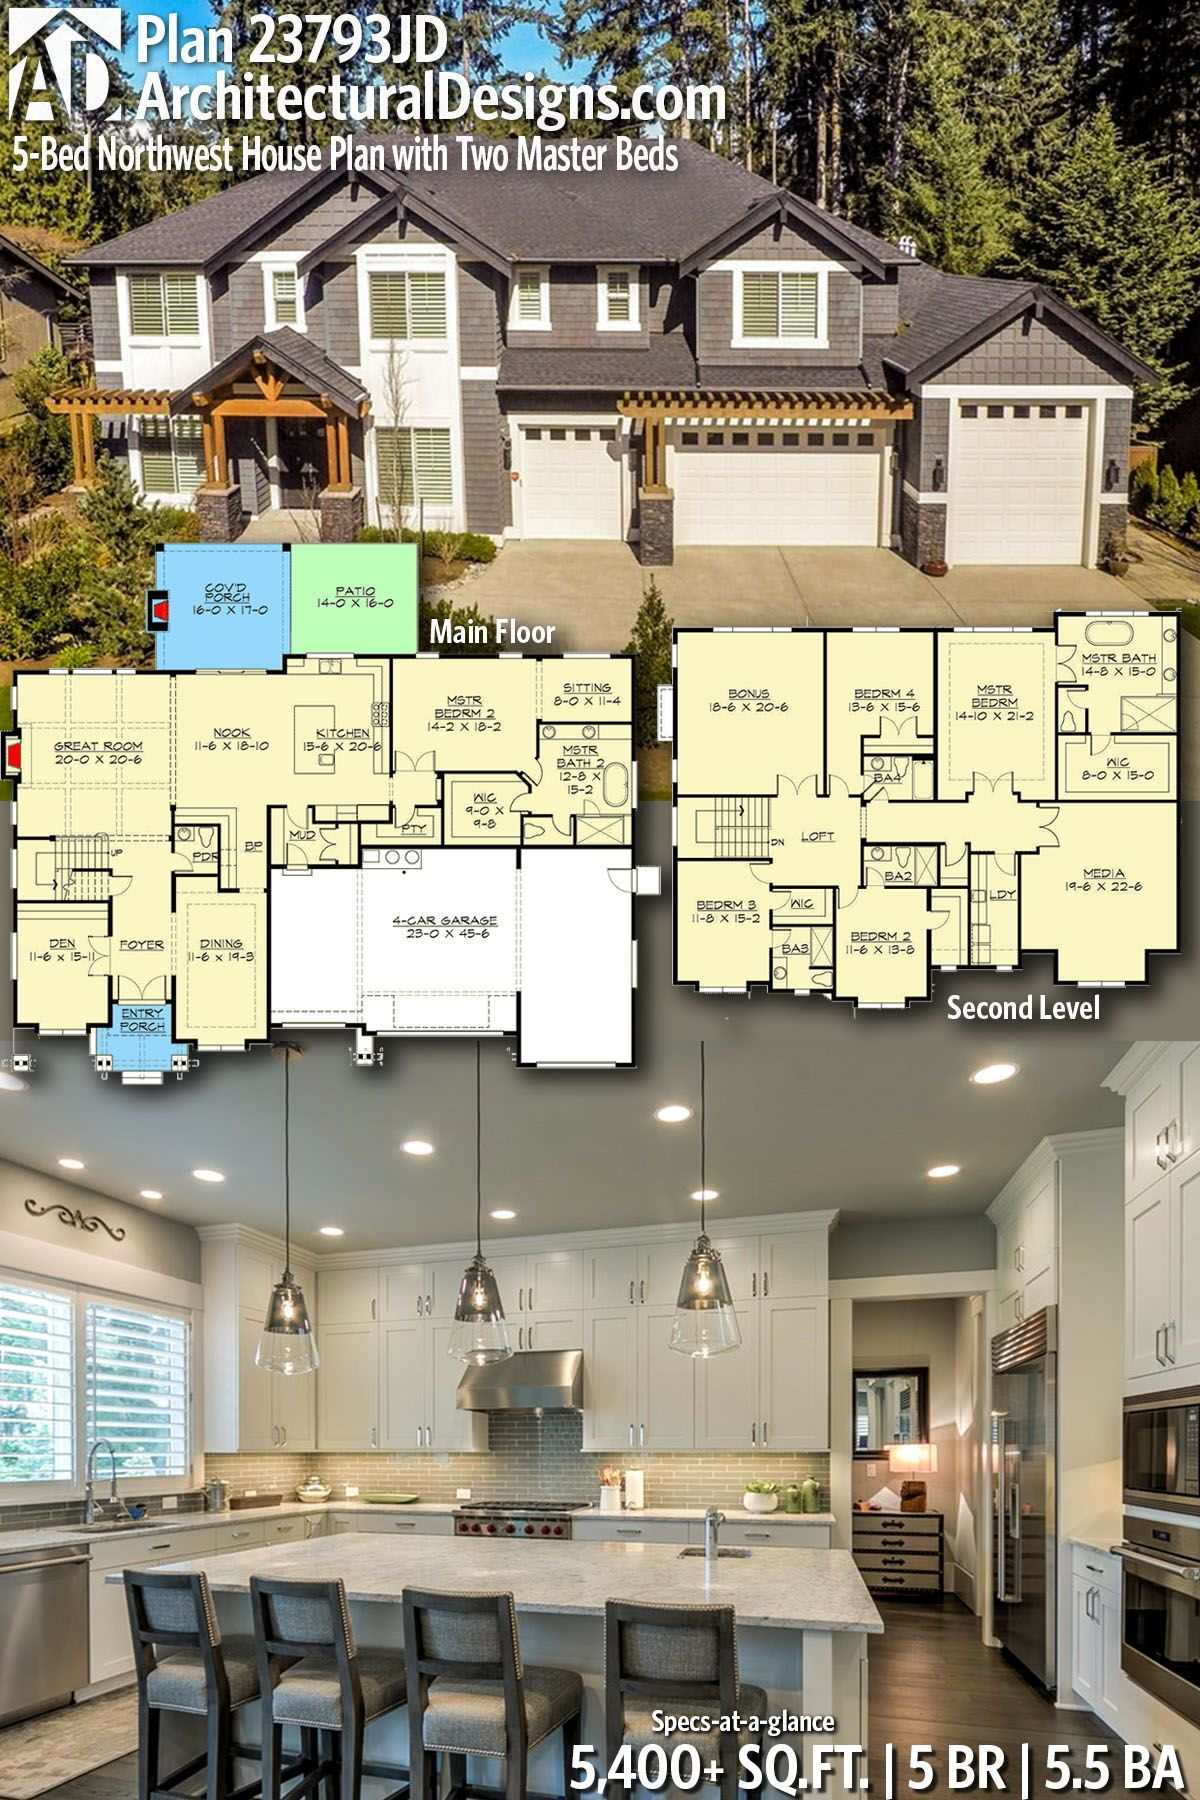 Architectural designs home plan jd gives you bedrooms baths and sq ft ready when are where do want to build also house plans archdesigns on pinterest rh